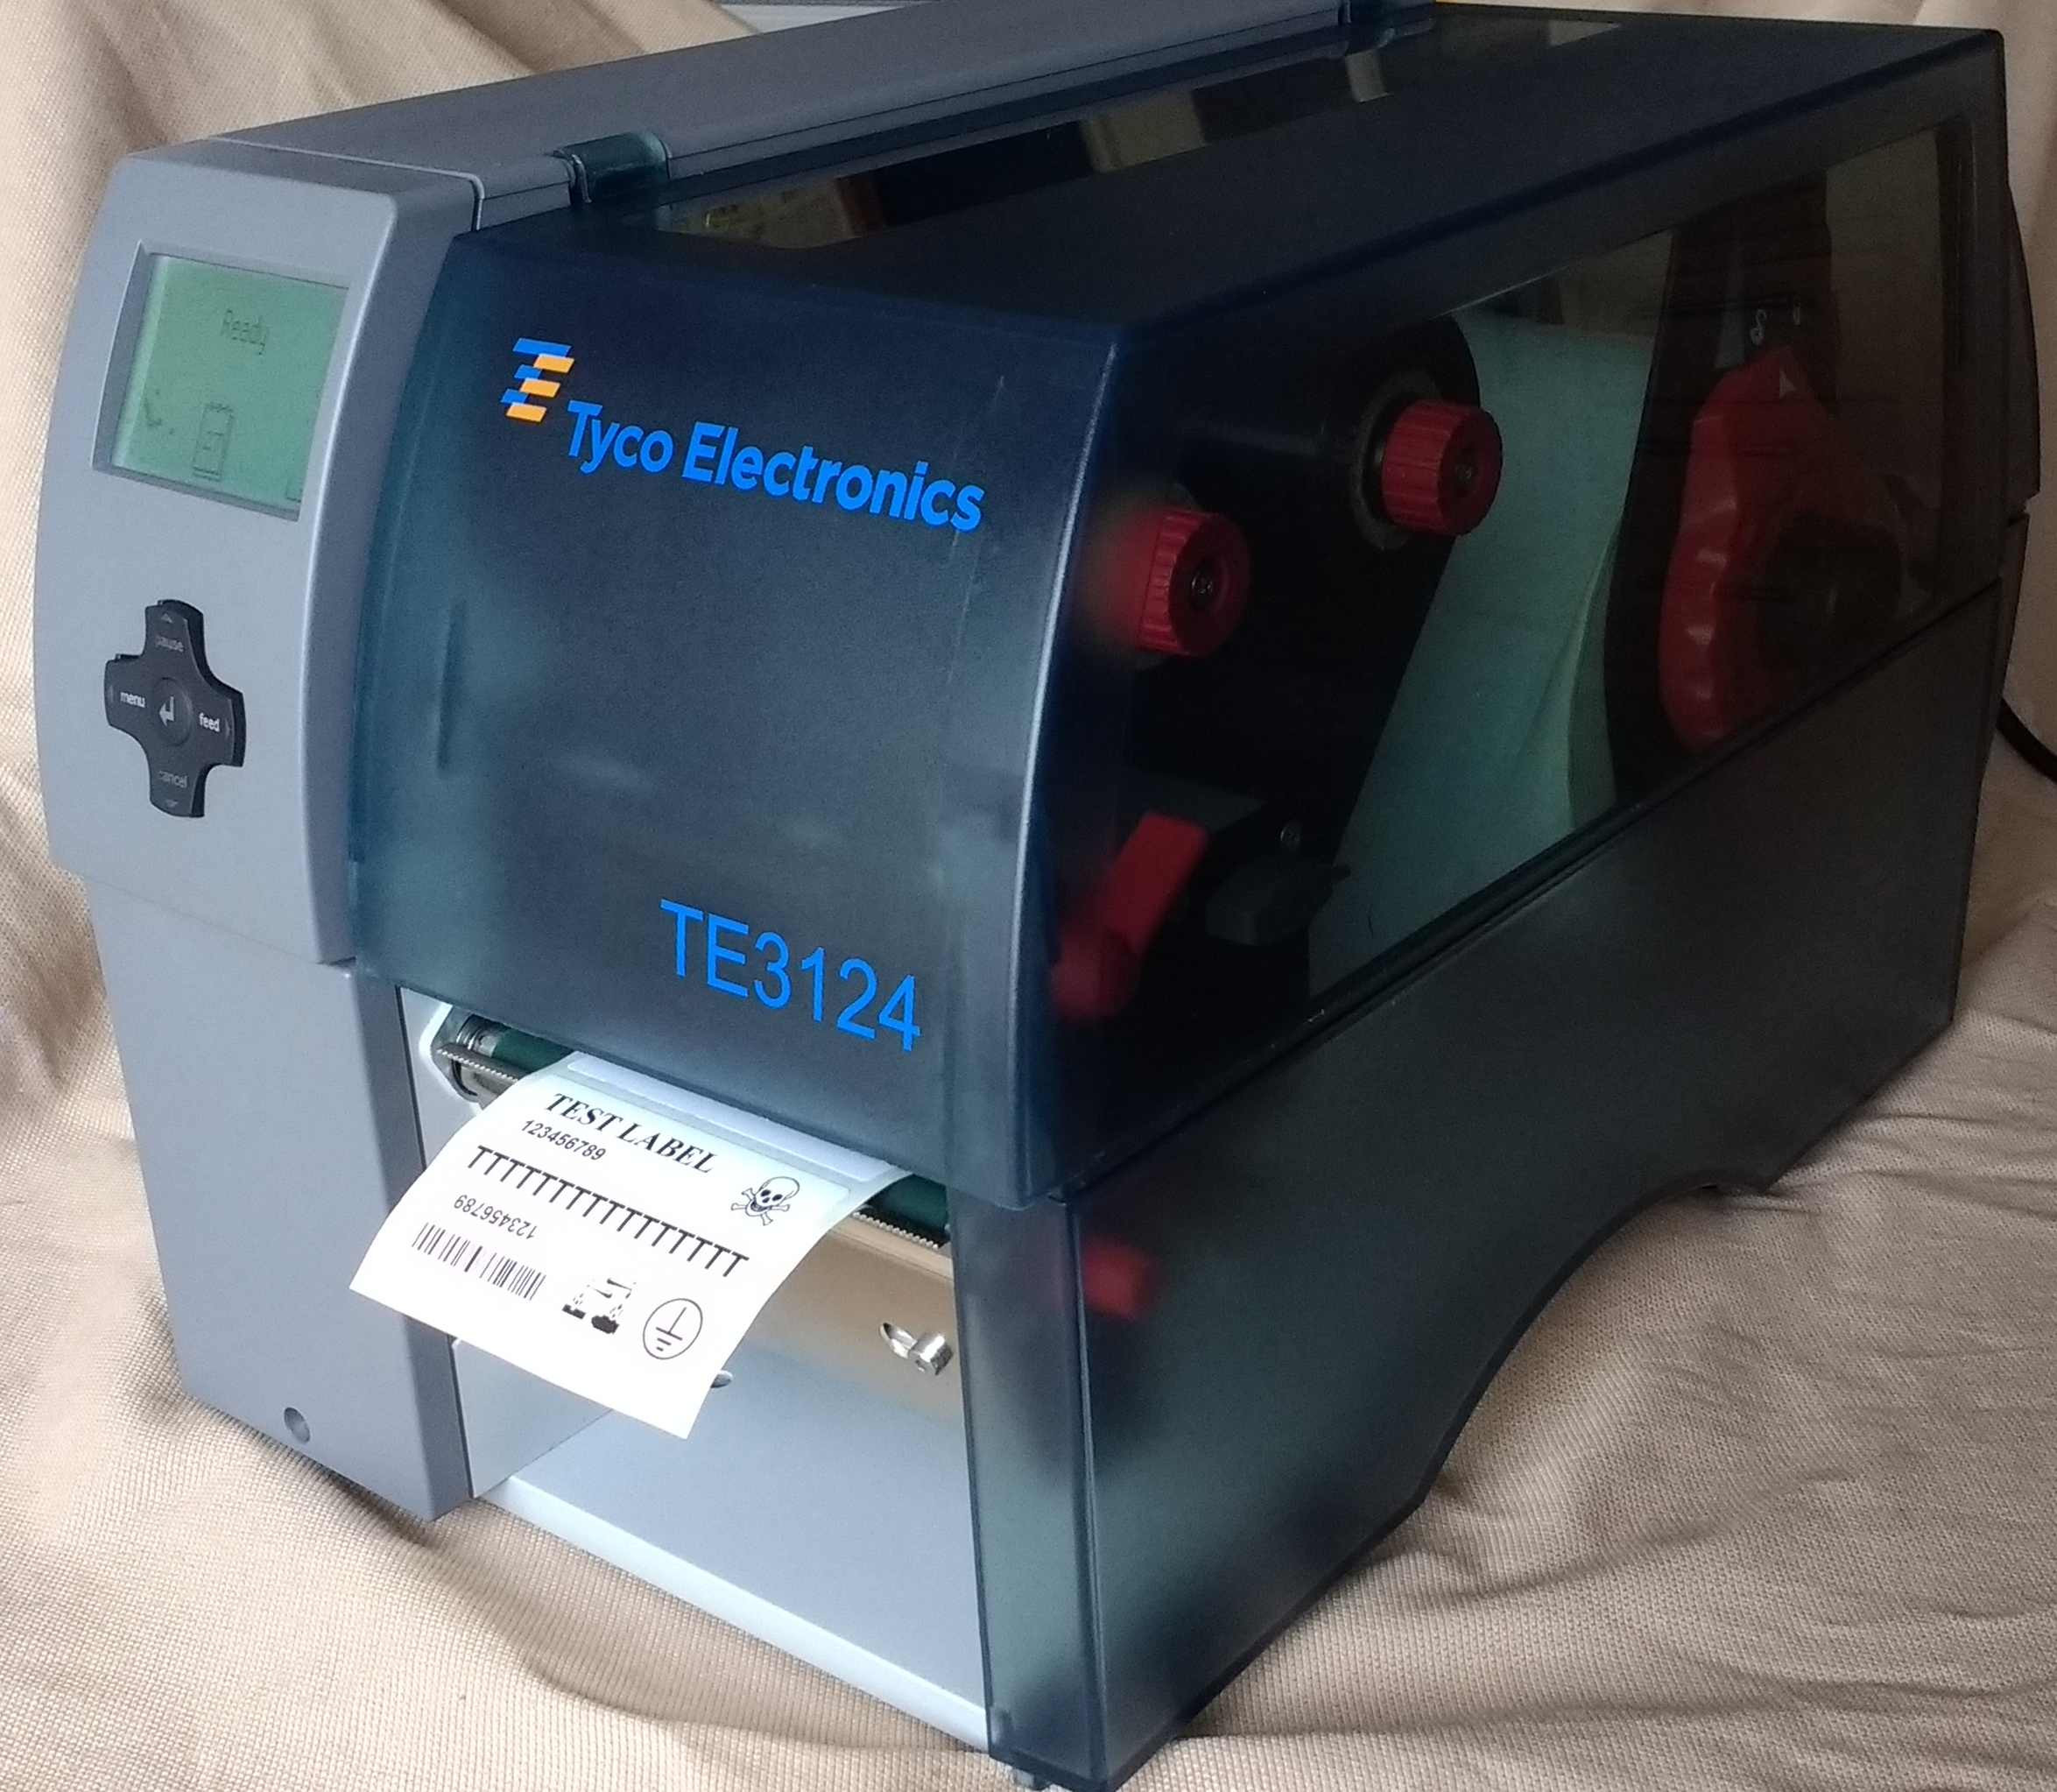 TE Connectivity TE3124 600dpi Thermal Transfer Printer with Wintotal Software (USED130)